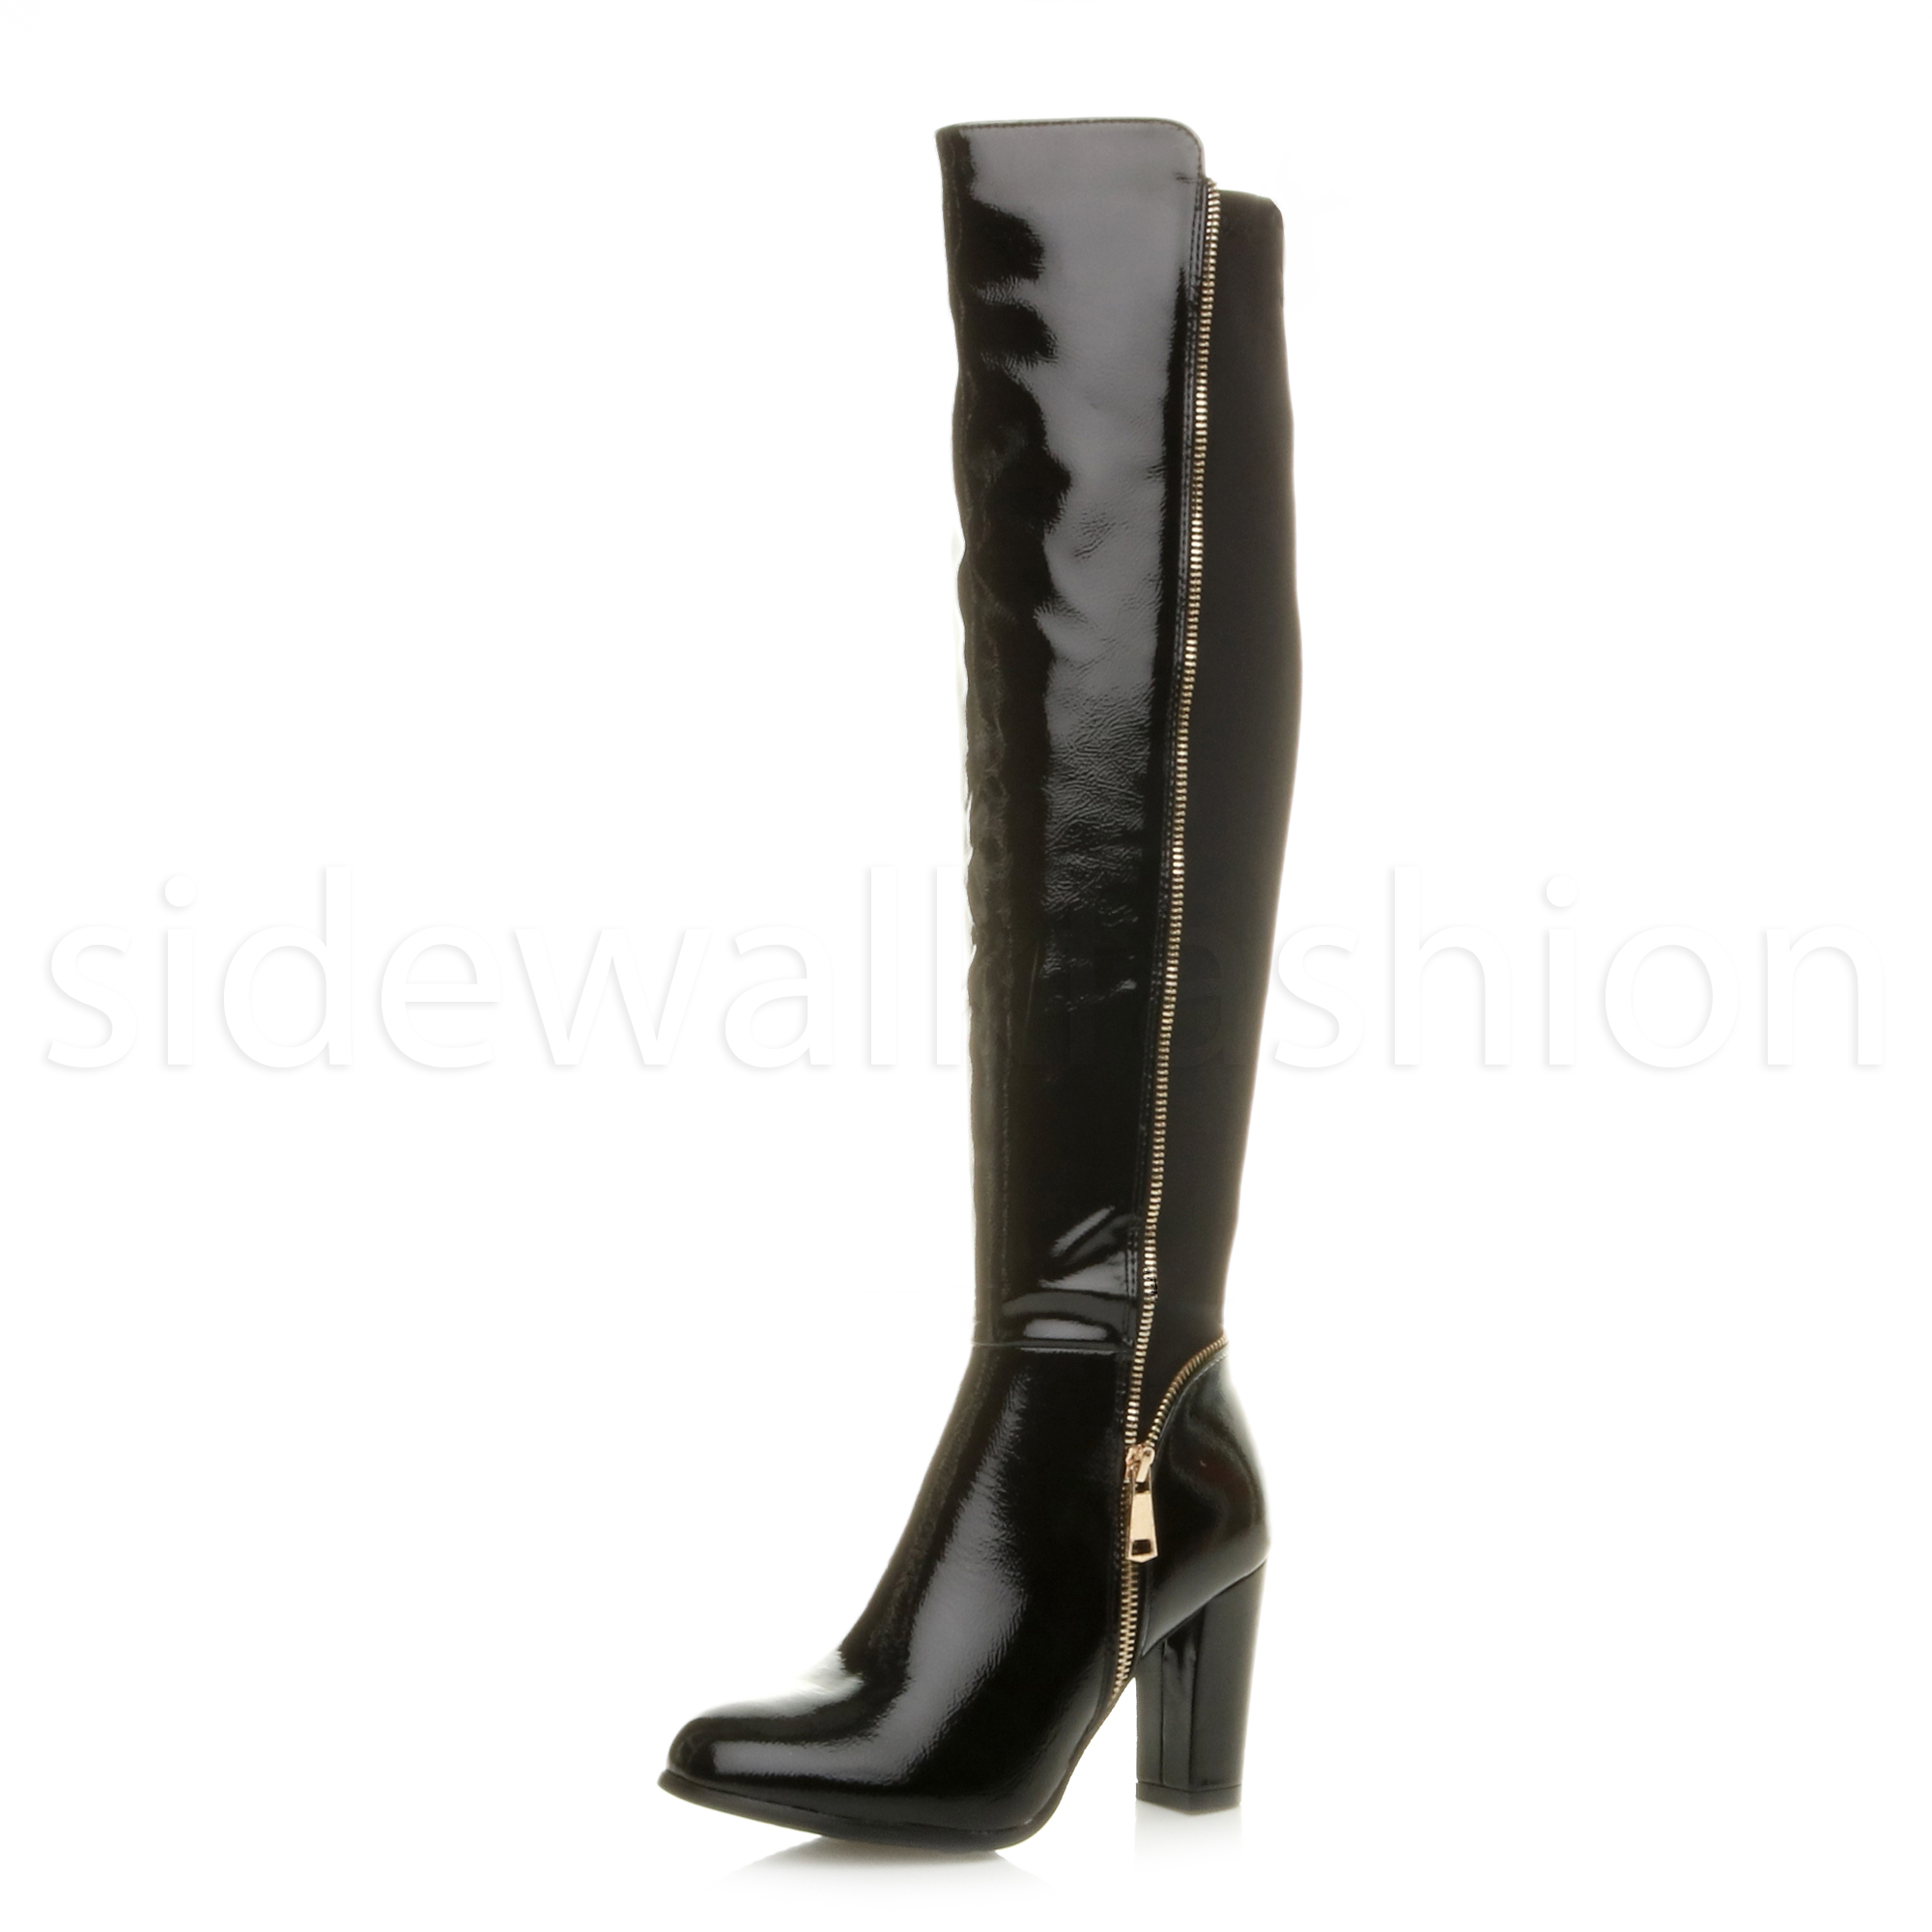 2b65fa54879 ... High Block Heel Gold Zip Stretch Over The Knee Riding BOOTS Size UK 4    EU 37   US 6 Black Patent. About this product. Picture 1 of 6  Picture 2 of  6 ...